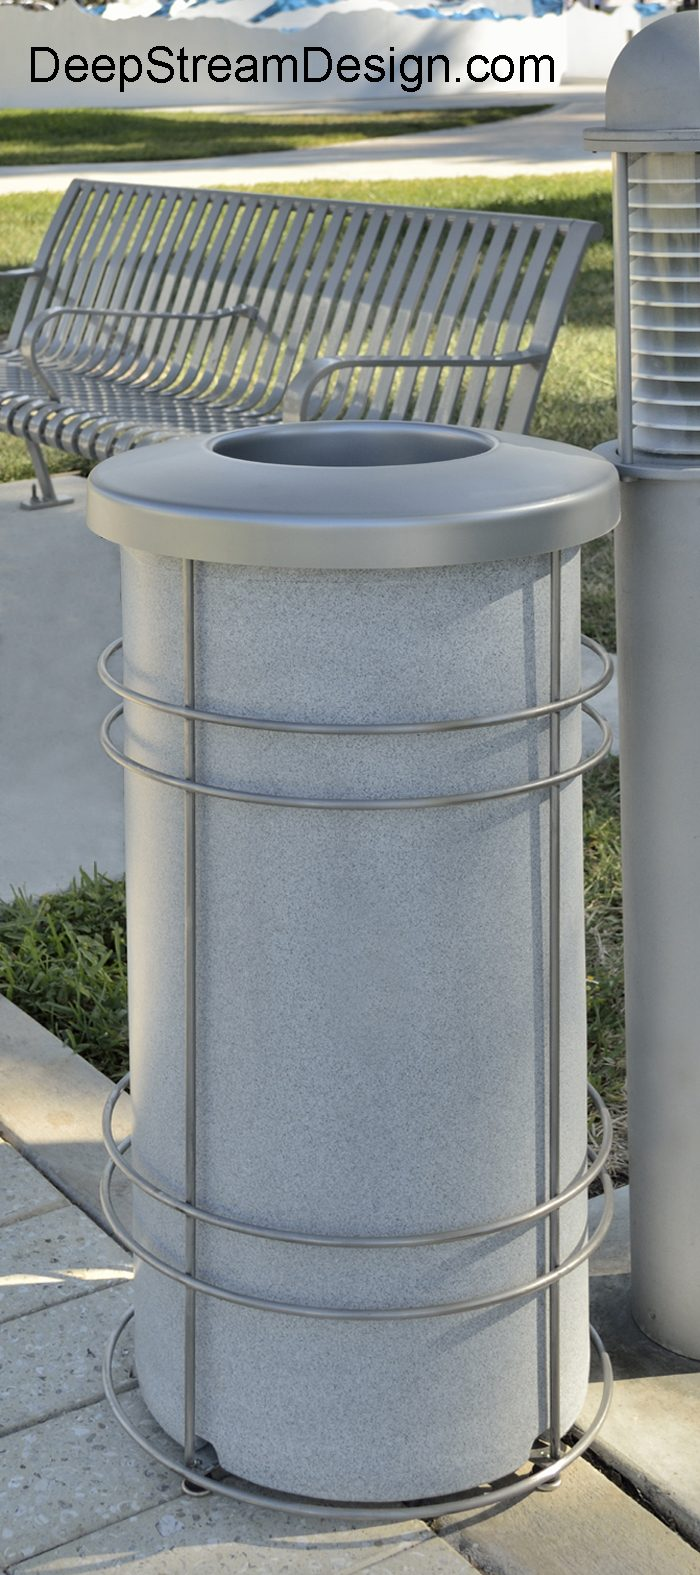 "DeepStream Designs' Nautique Modern Recycling and Trash Receptacles with a rugged weatherproof inner bin inside a stainless steel frame with adjustable feet housing a leak proof removable recycled plastic liner with a 9"" UV resistant polypropylene lid."